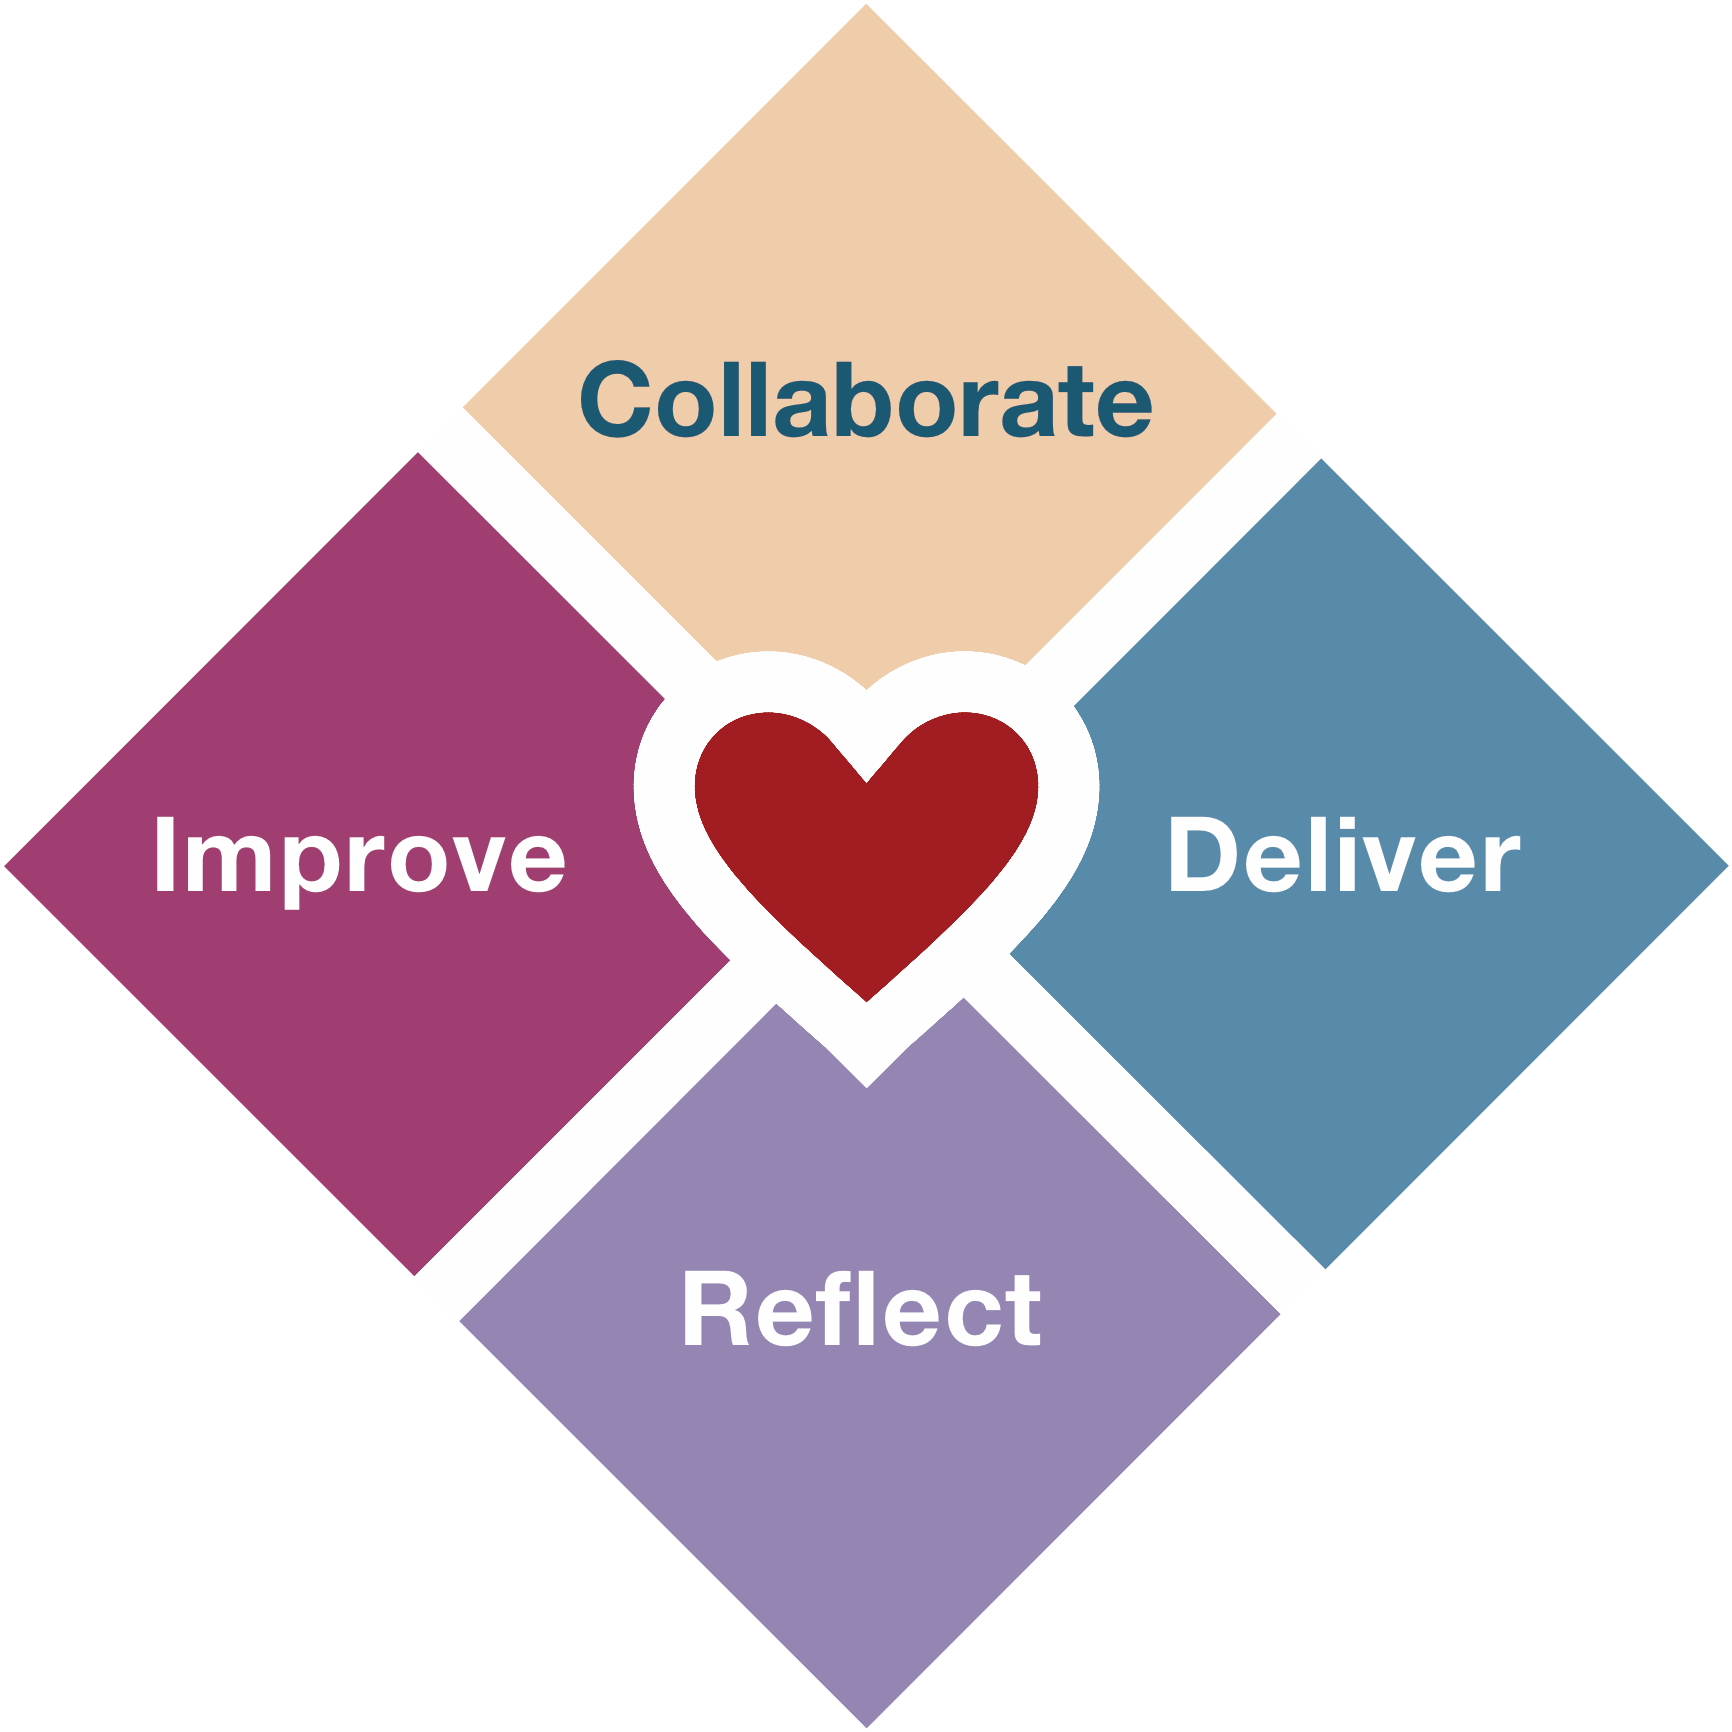 Alistair's Heart of Agile Framework